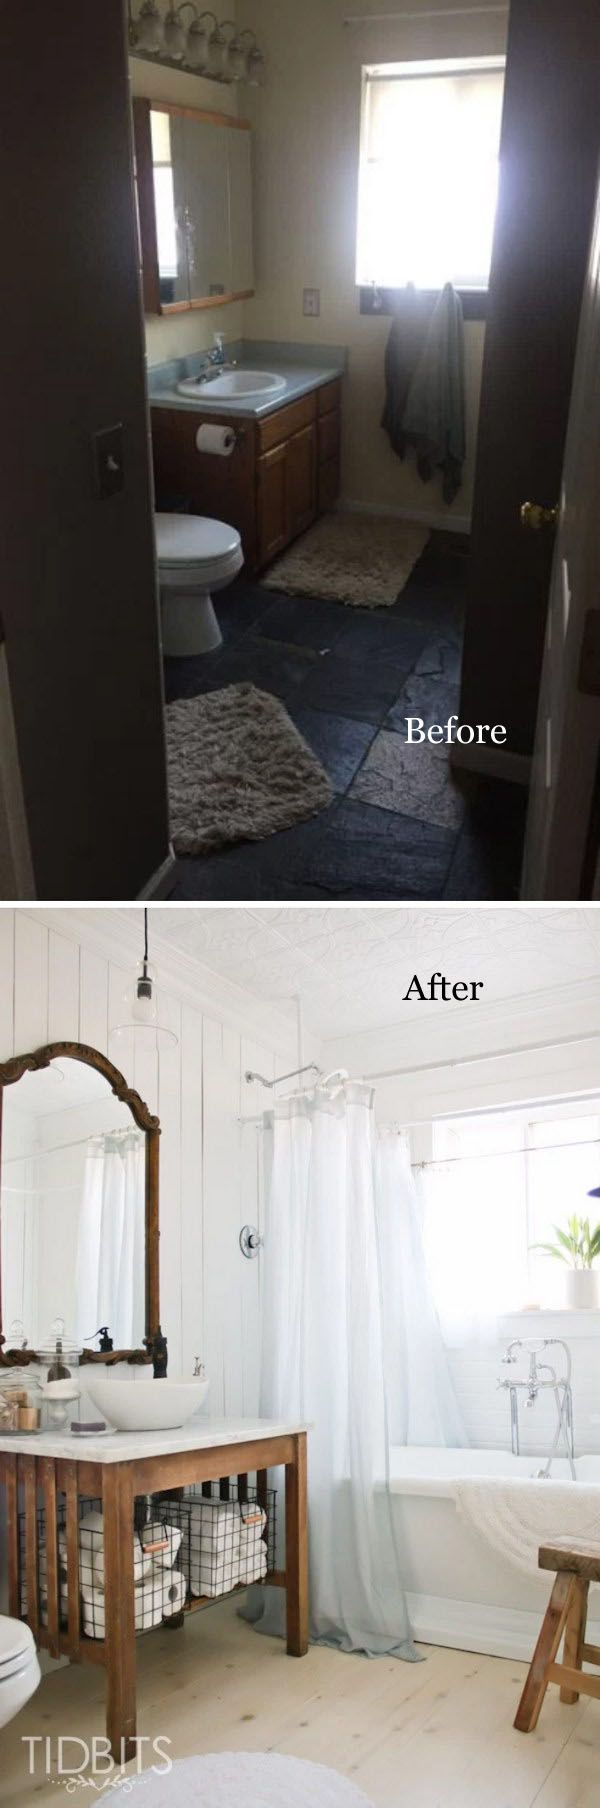 best bathroom before and after makeover images on pinterest